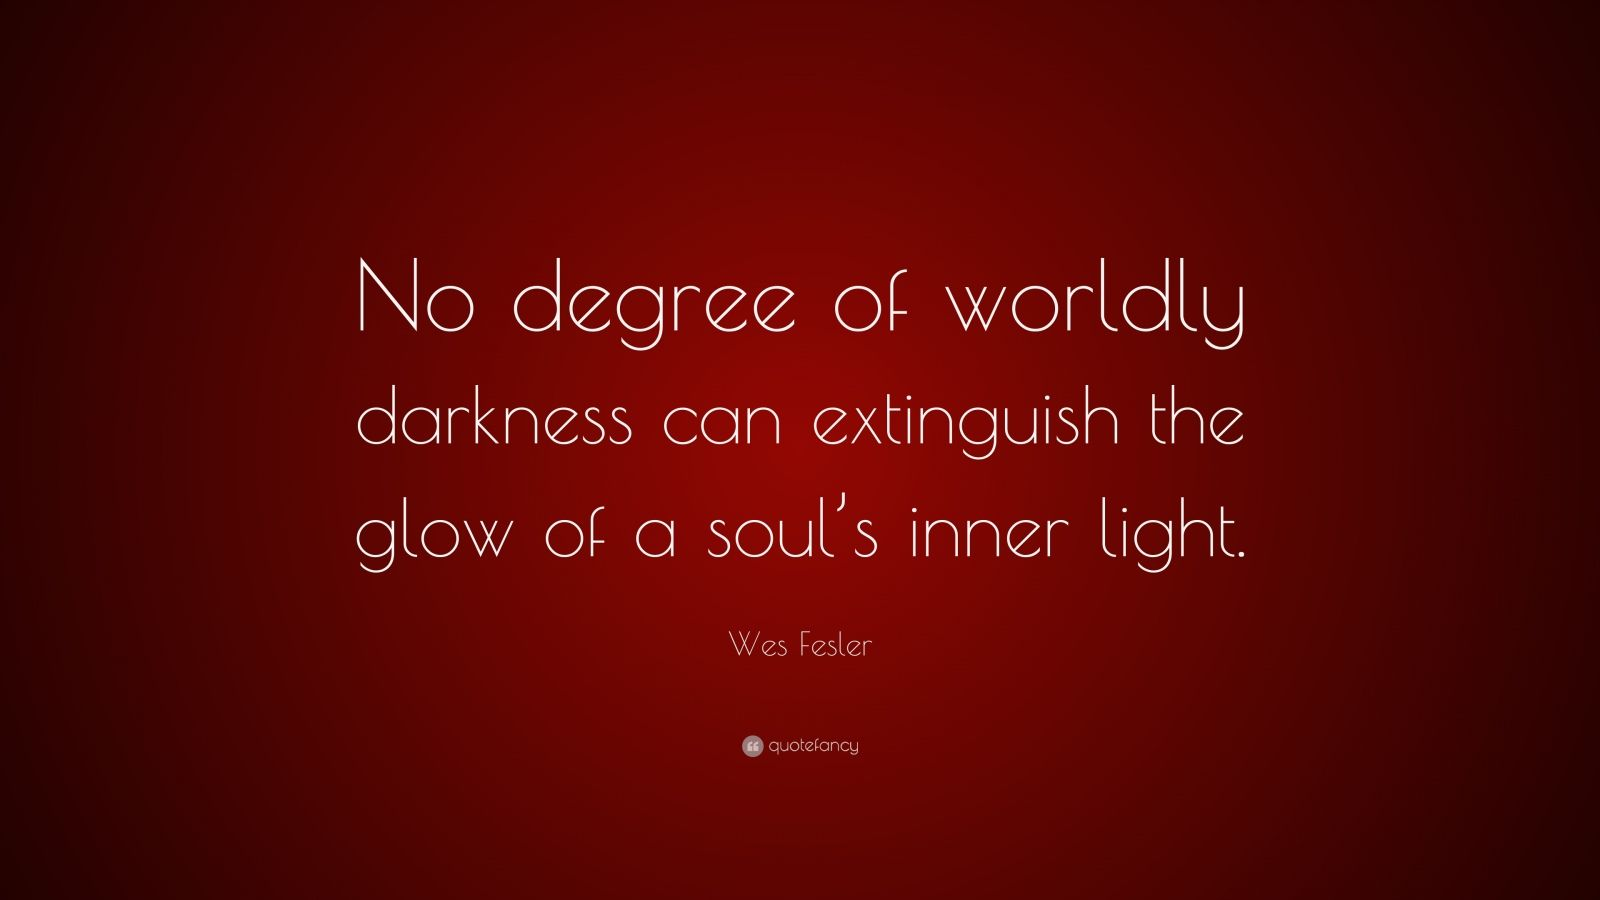 """Wes Fesler Quote: """"No degree of worldly darkness can extinguish the glow of a soul's inner light."""""""